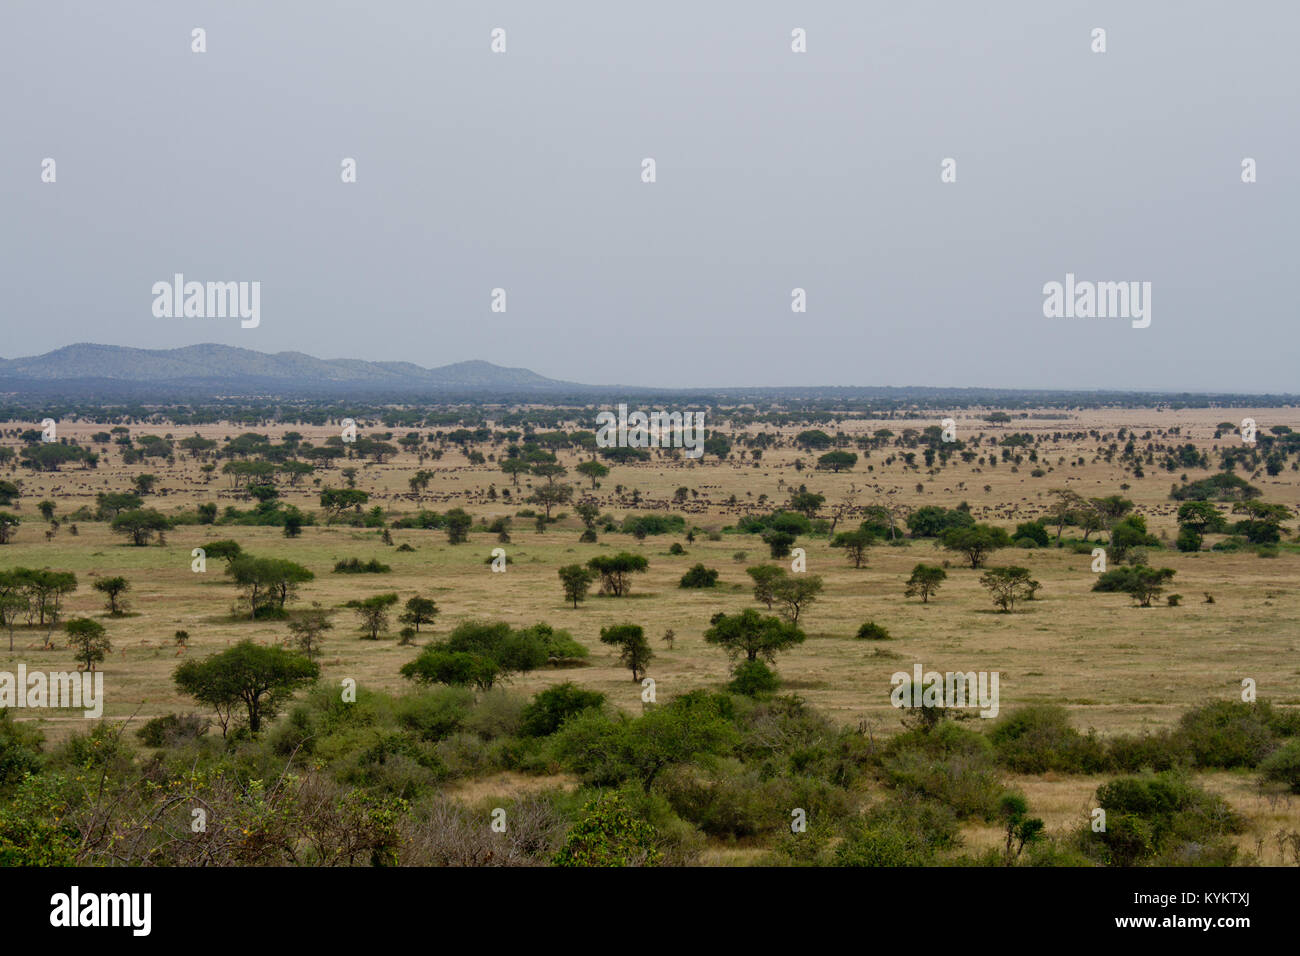 A vast herd of african animals in the distance in Serengeti National Park Stock Photo